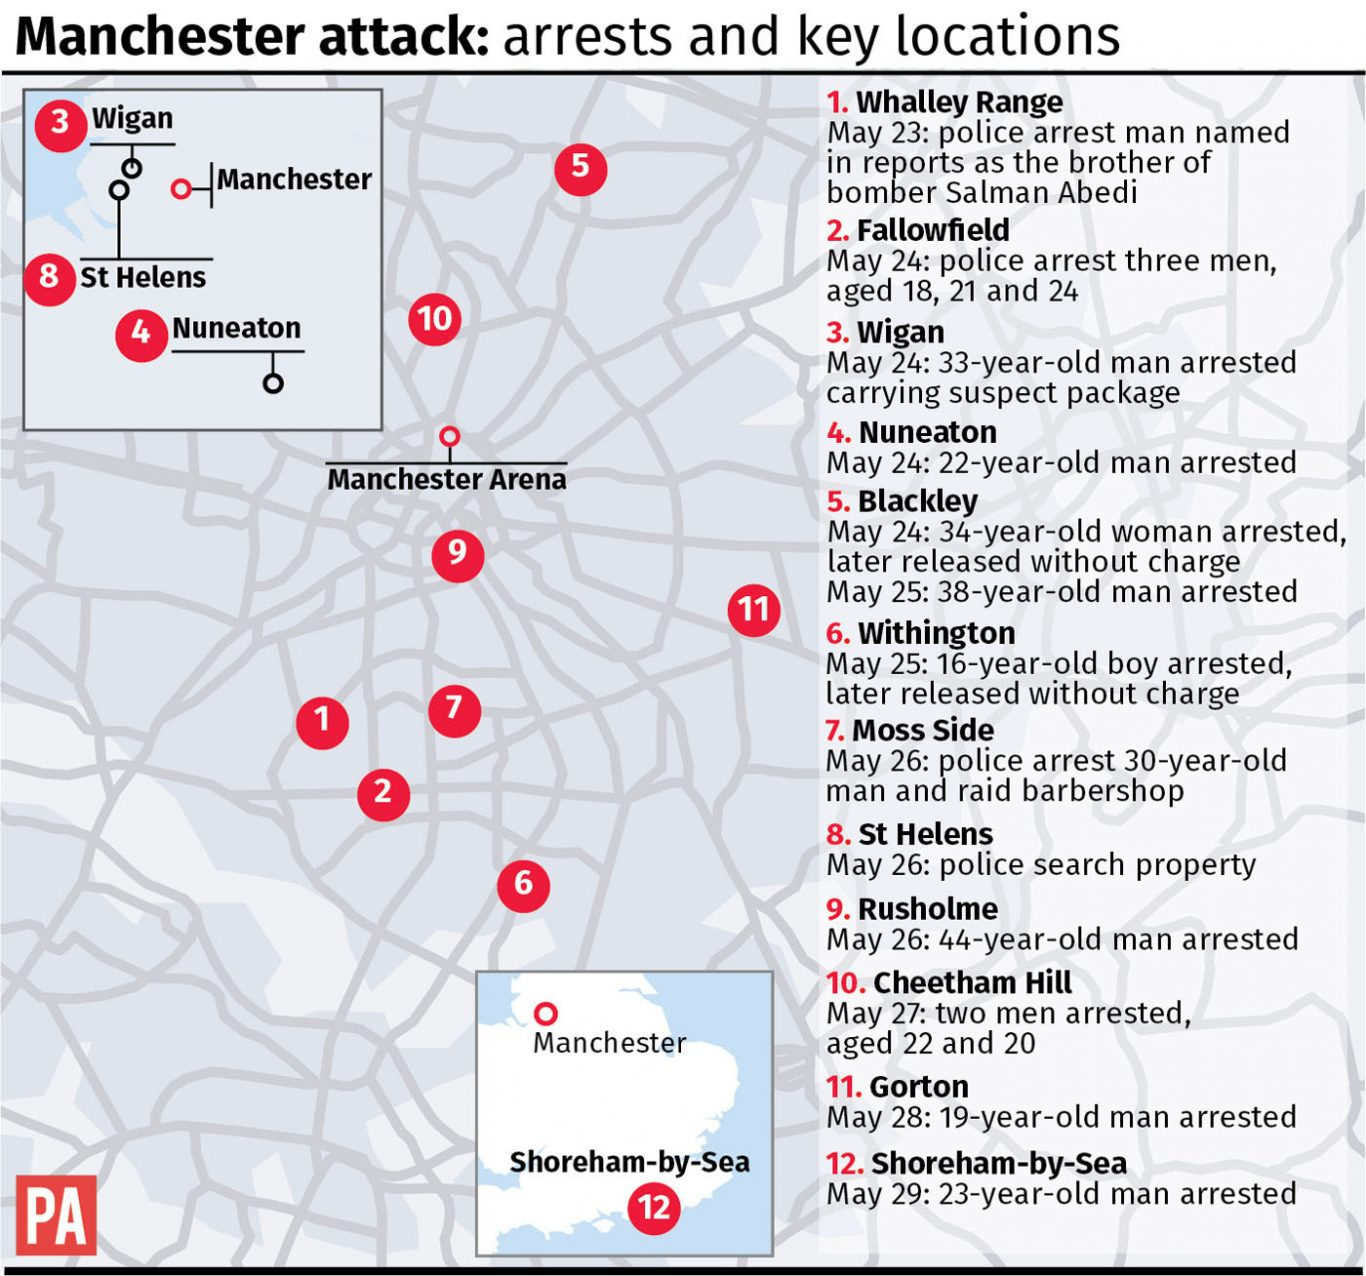 Members of Manchester bomber's network could still be at large - Amber Rudd